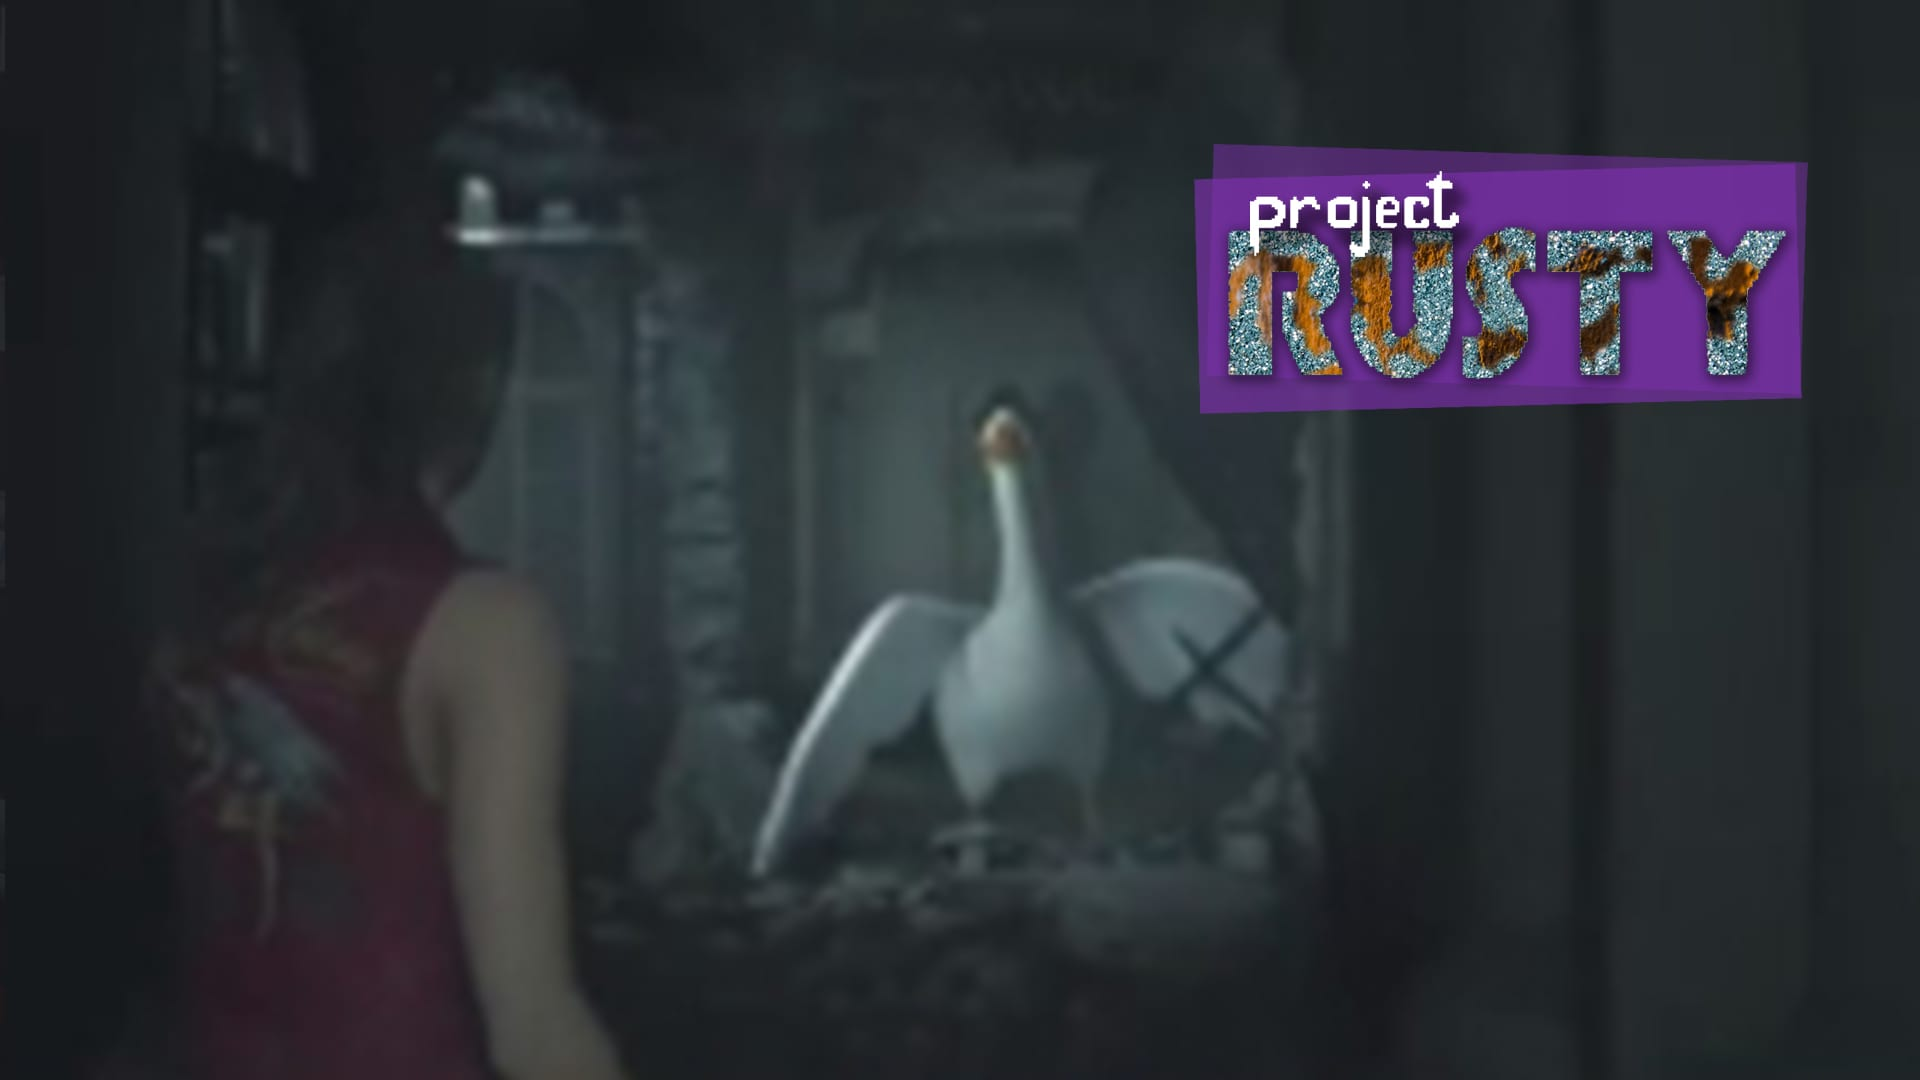 Project Rusty Resident Evil 2 Goose